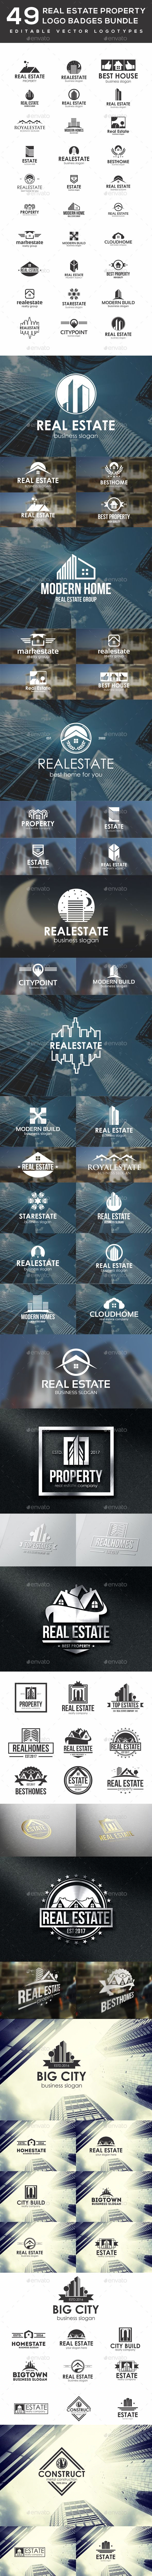 49 Real Estate Property Logo Badges Bundle — Vector EPS #bundle #custom logo design • Available here → https://graphicriver.net/item/49-real-estate-property-logo-badges-bundle/19275217?ref=pxcr